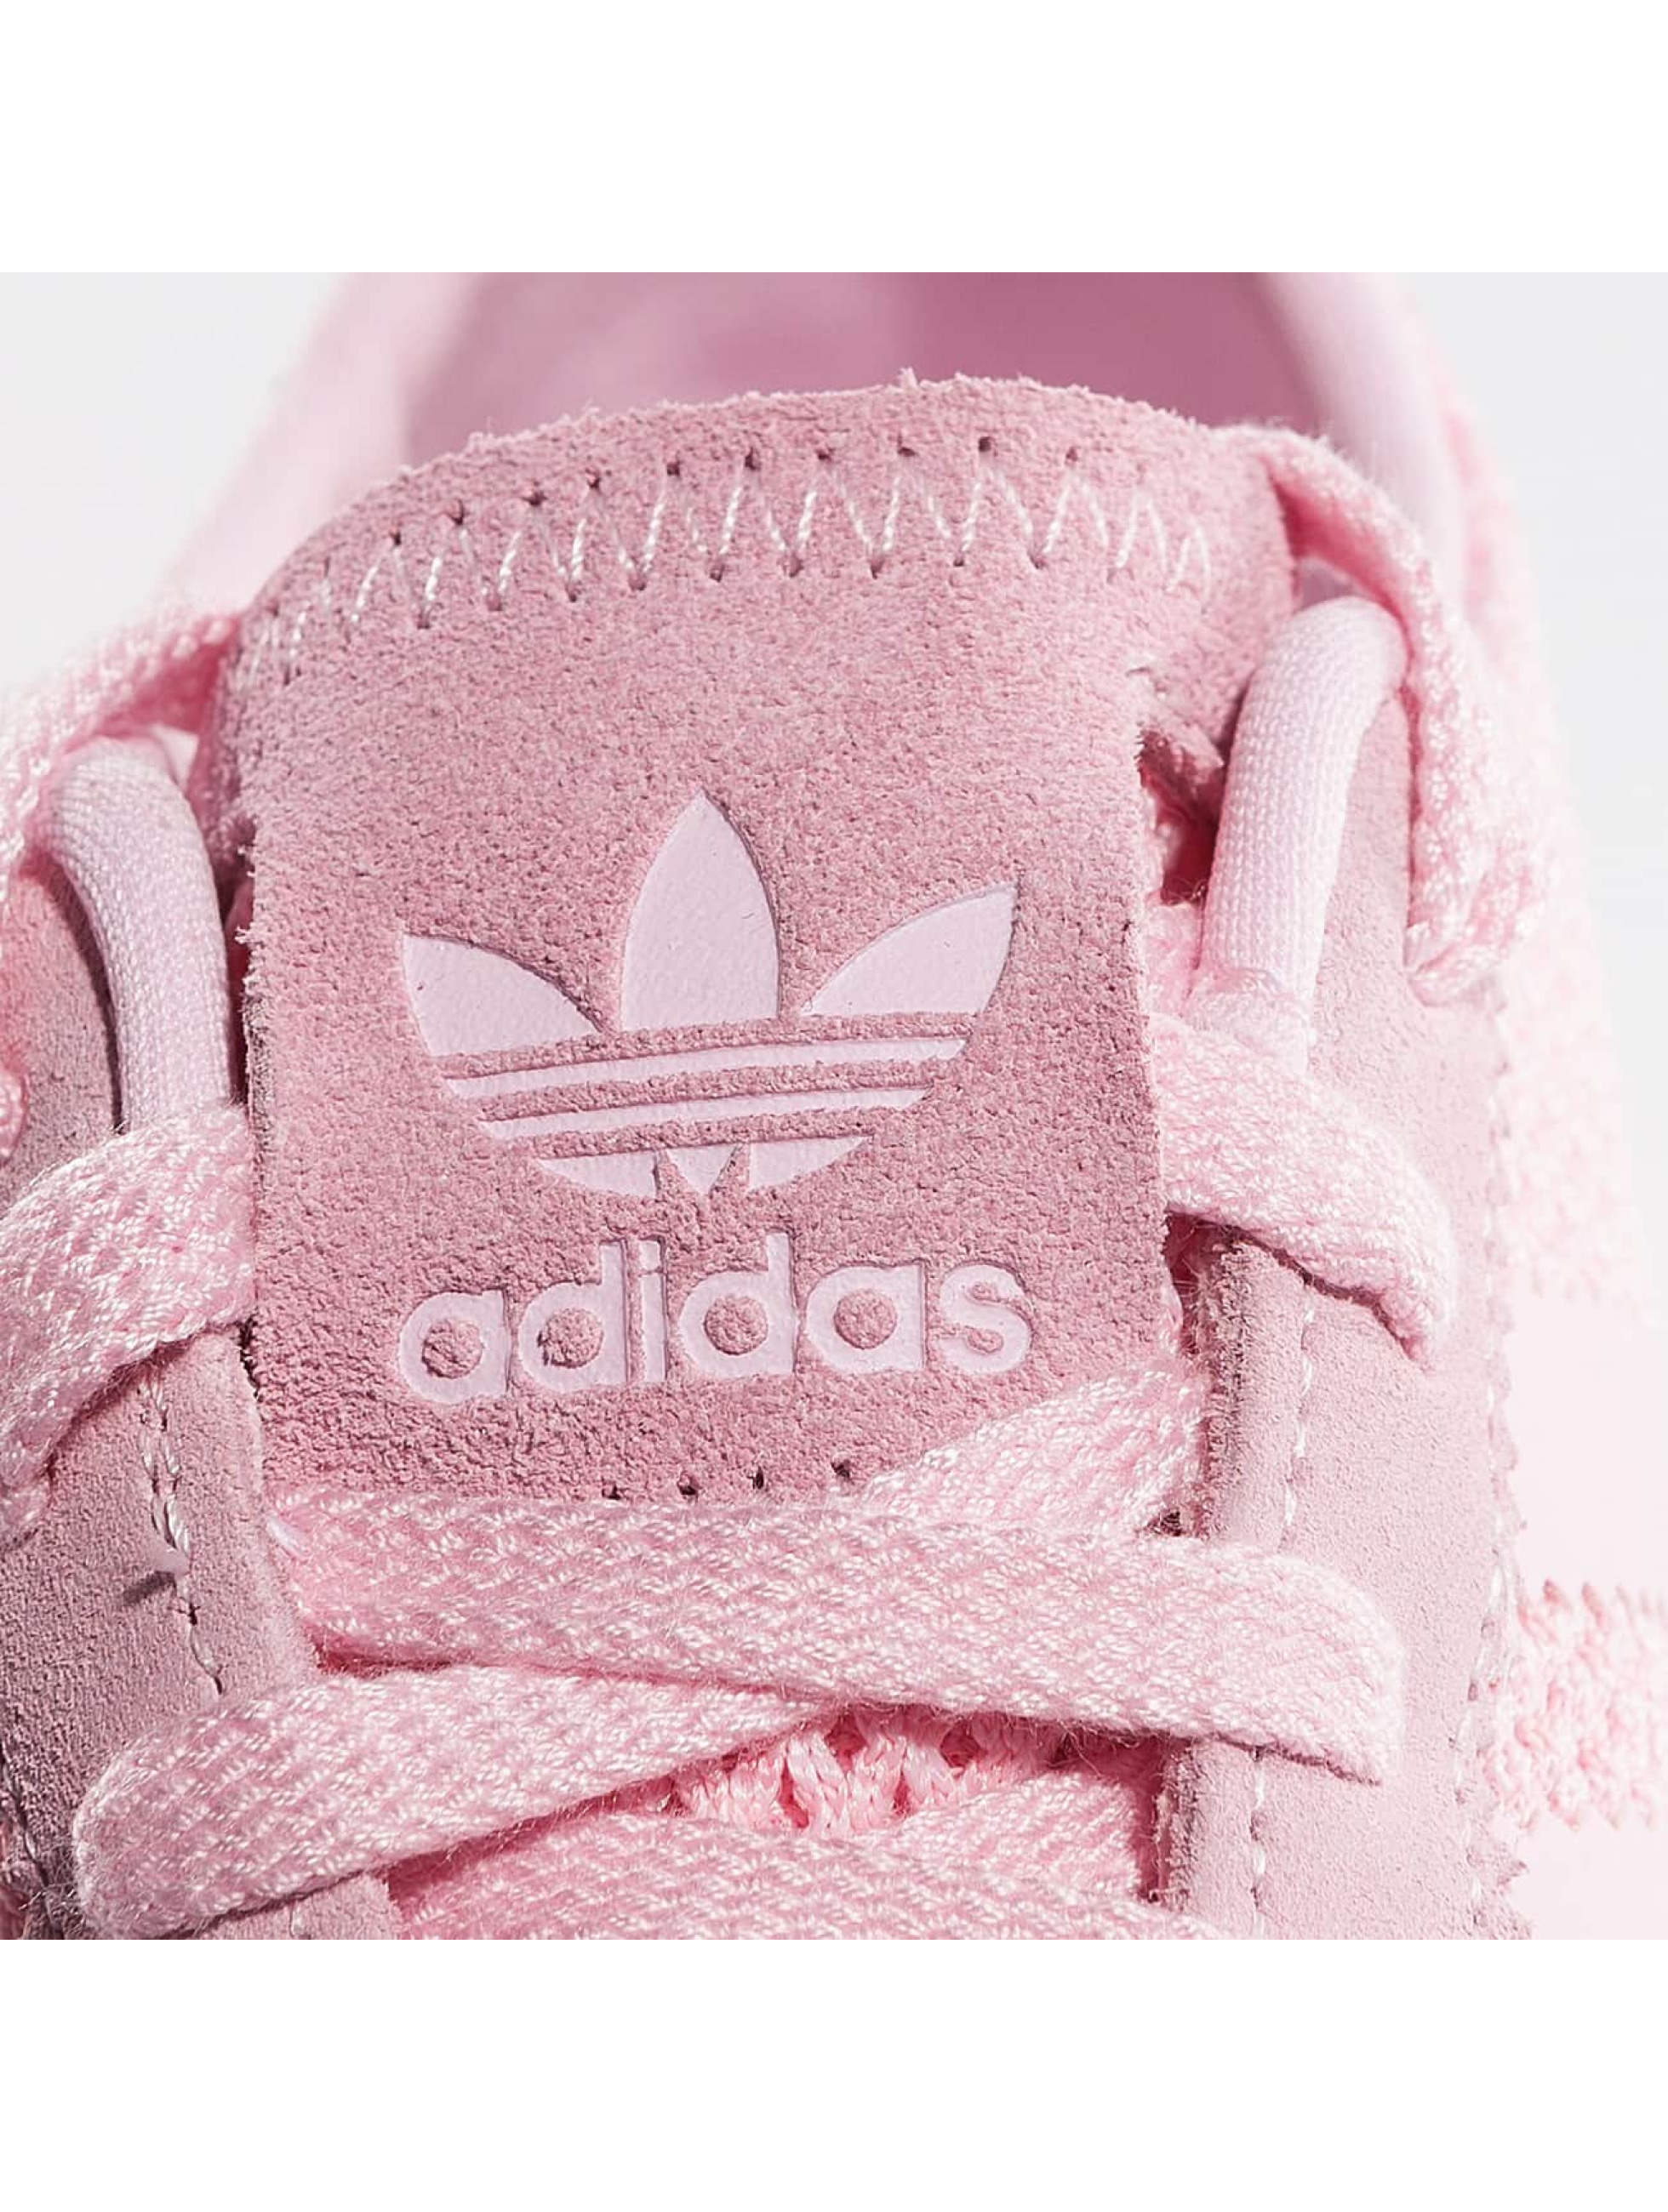 adidas originals Sneakers FLB W pink